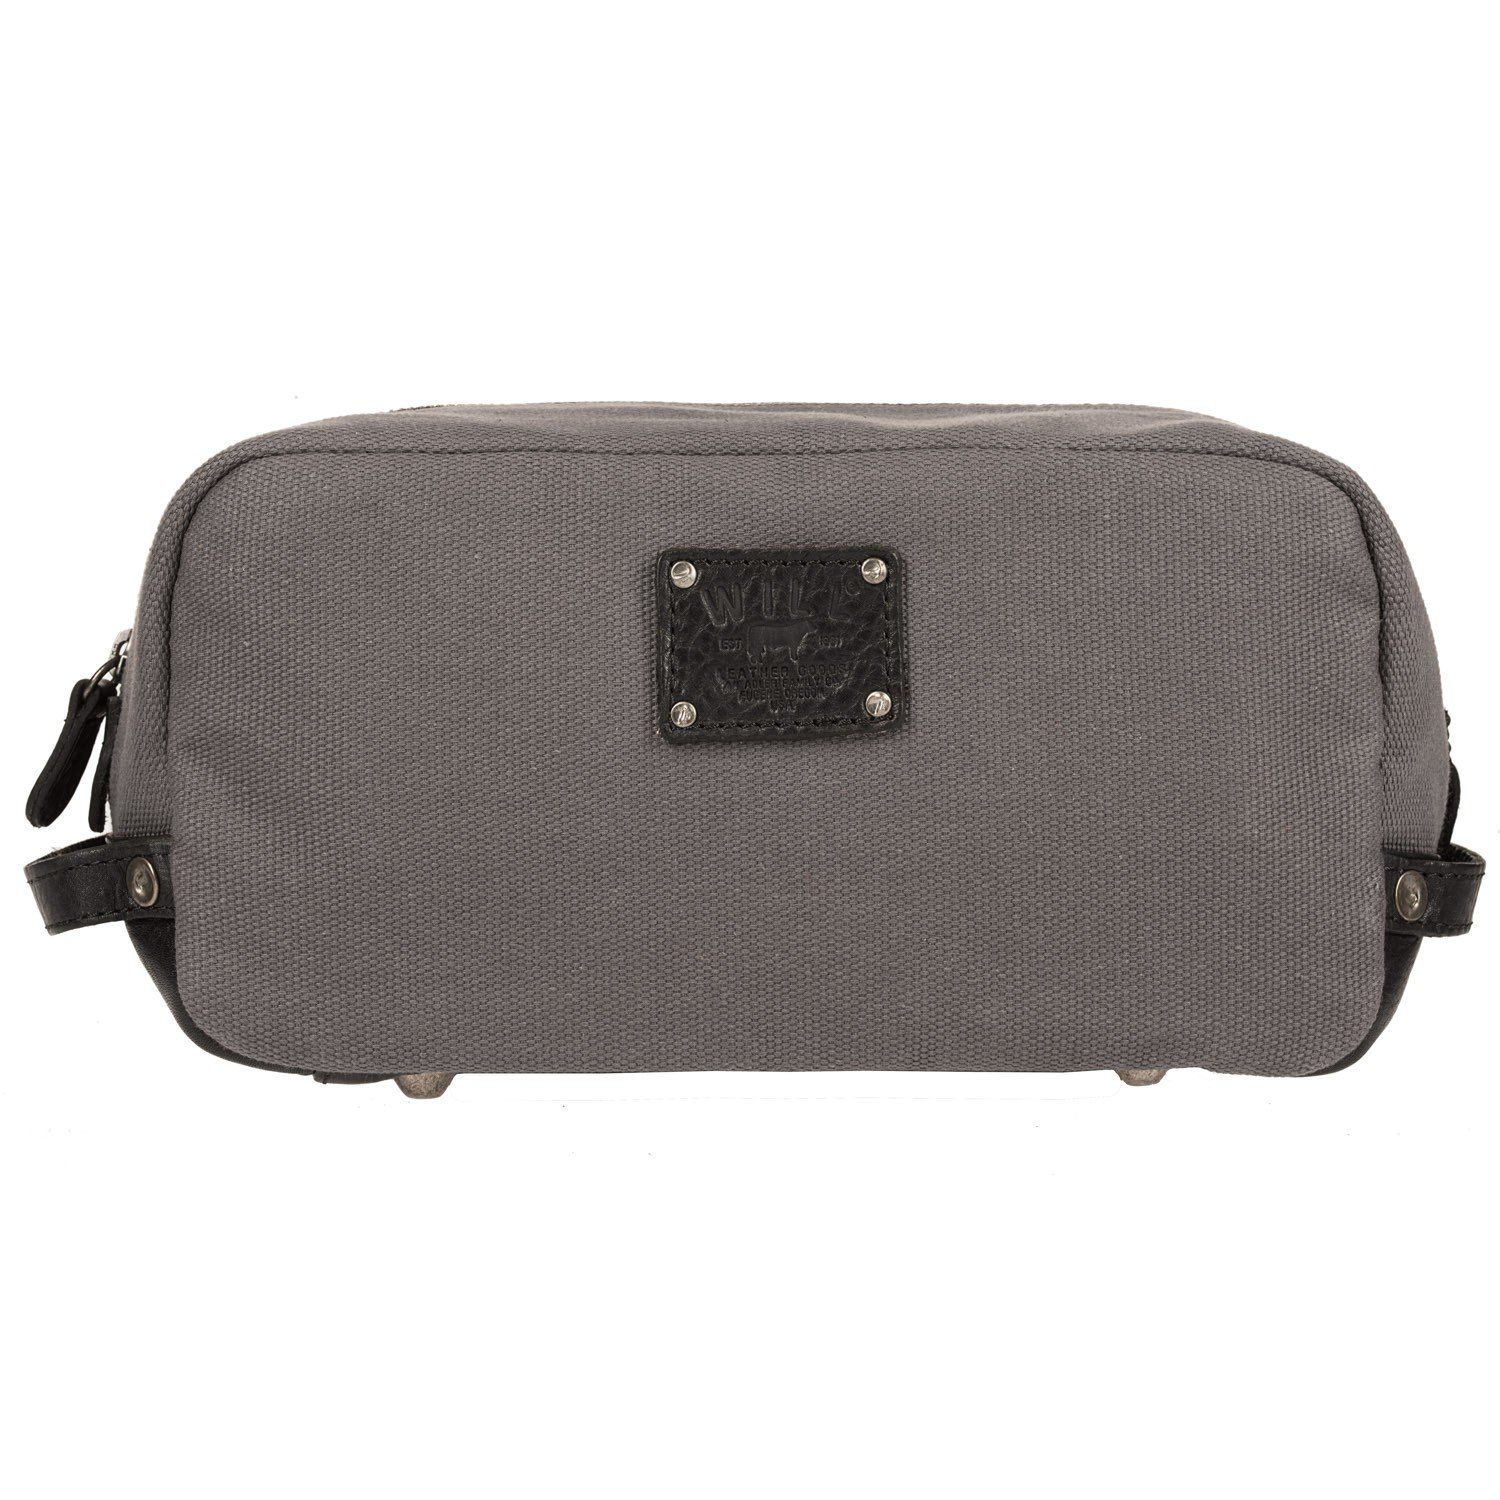 Will Leather Goods Men's Grey and Black Grady Travel Kit